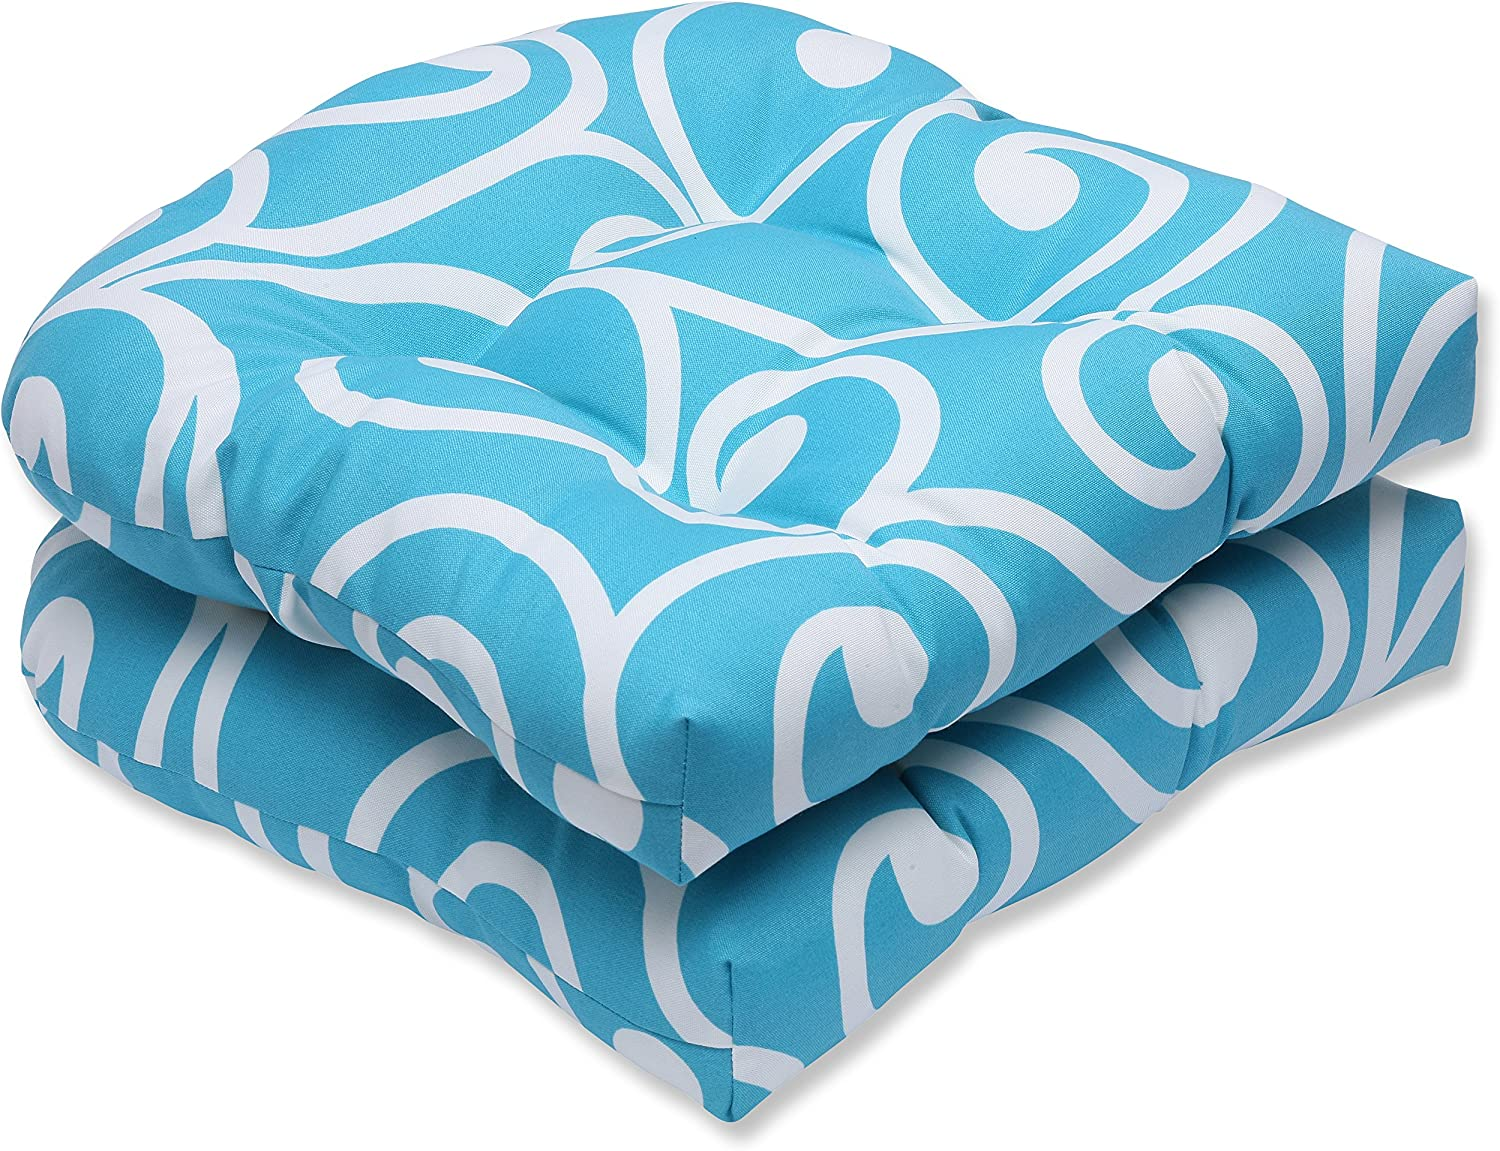 Pillow Perfect Outdoor Best Wicker Seat Cushion, Turquoise, Set of 2